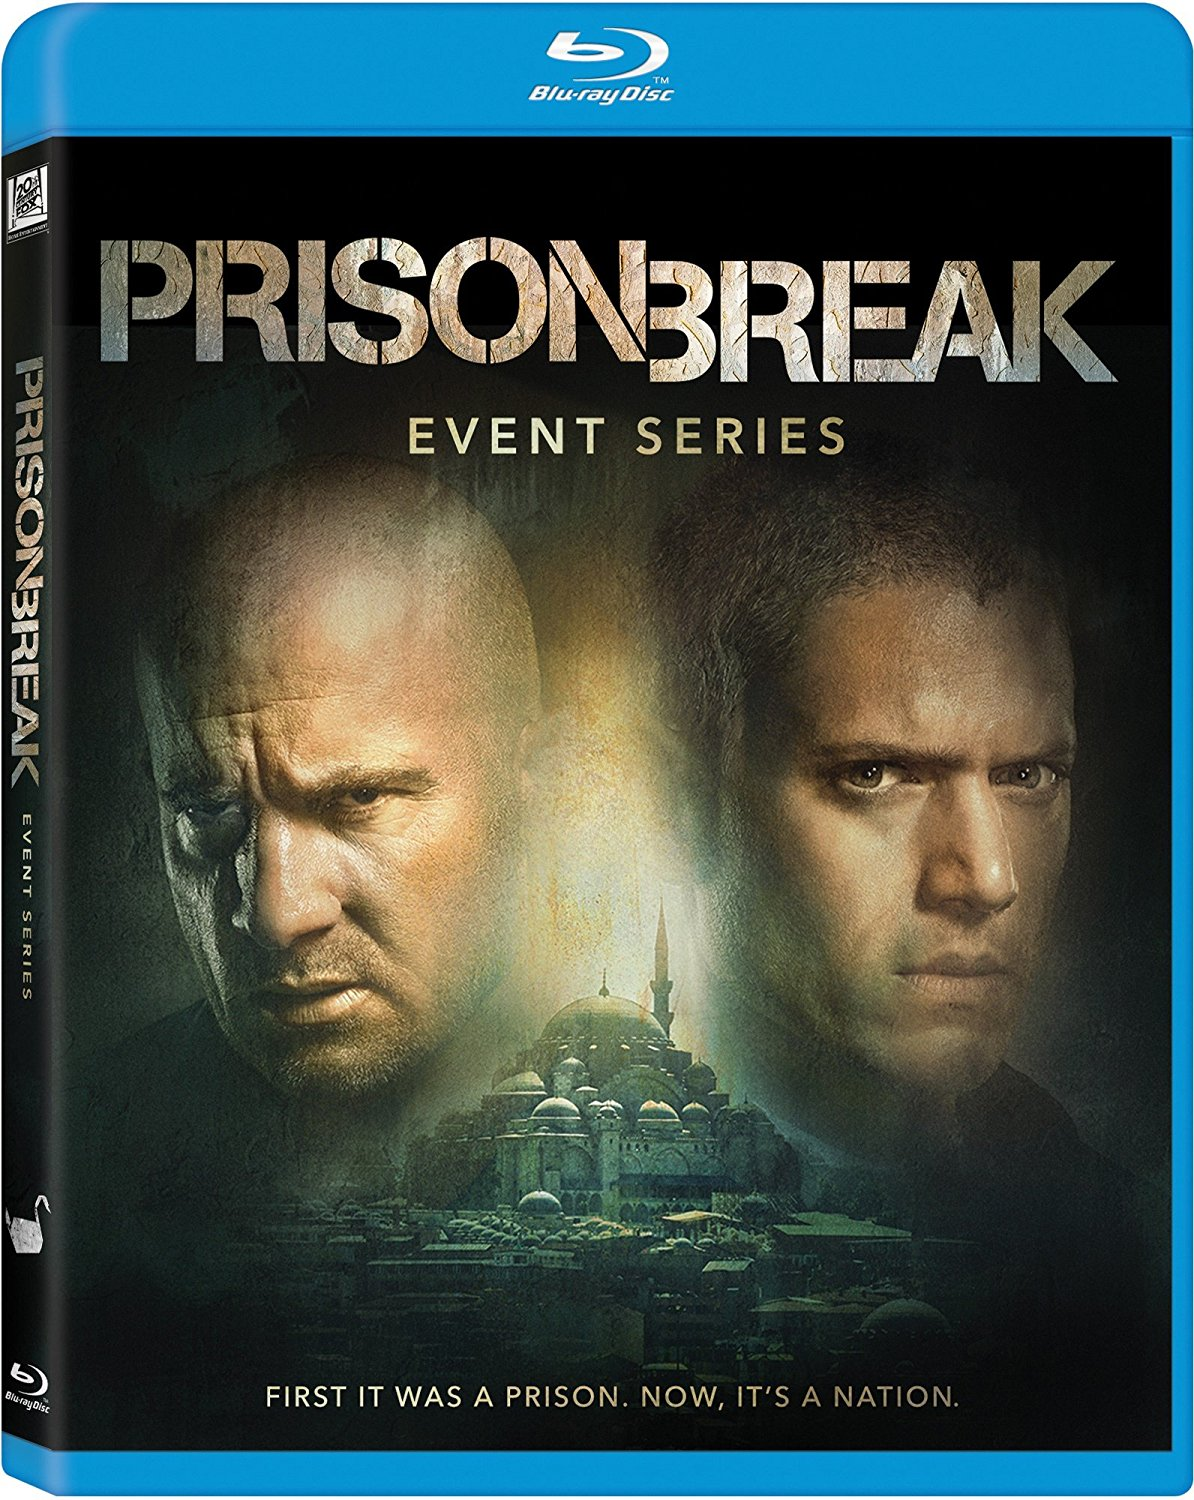 Prison Break [TV Series] - Prison Break: Event Series